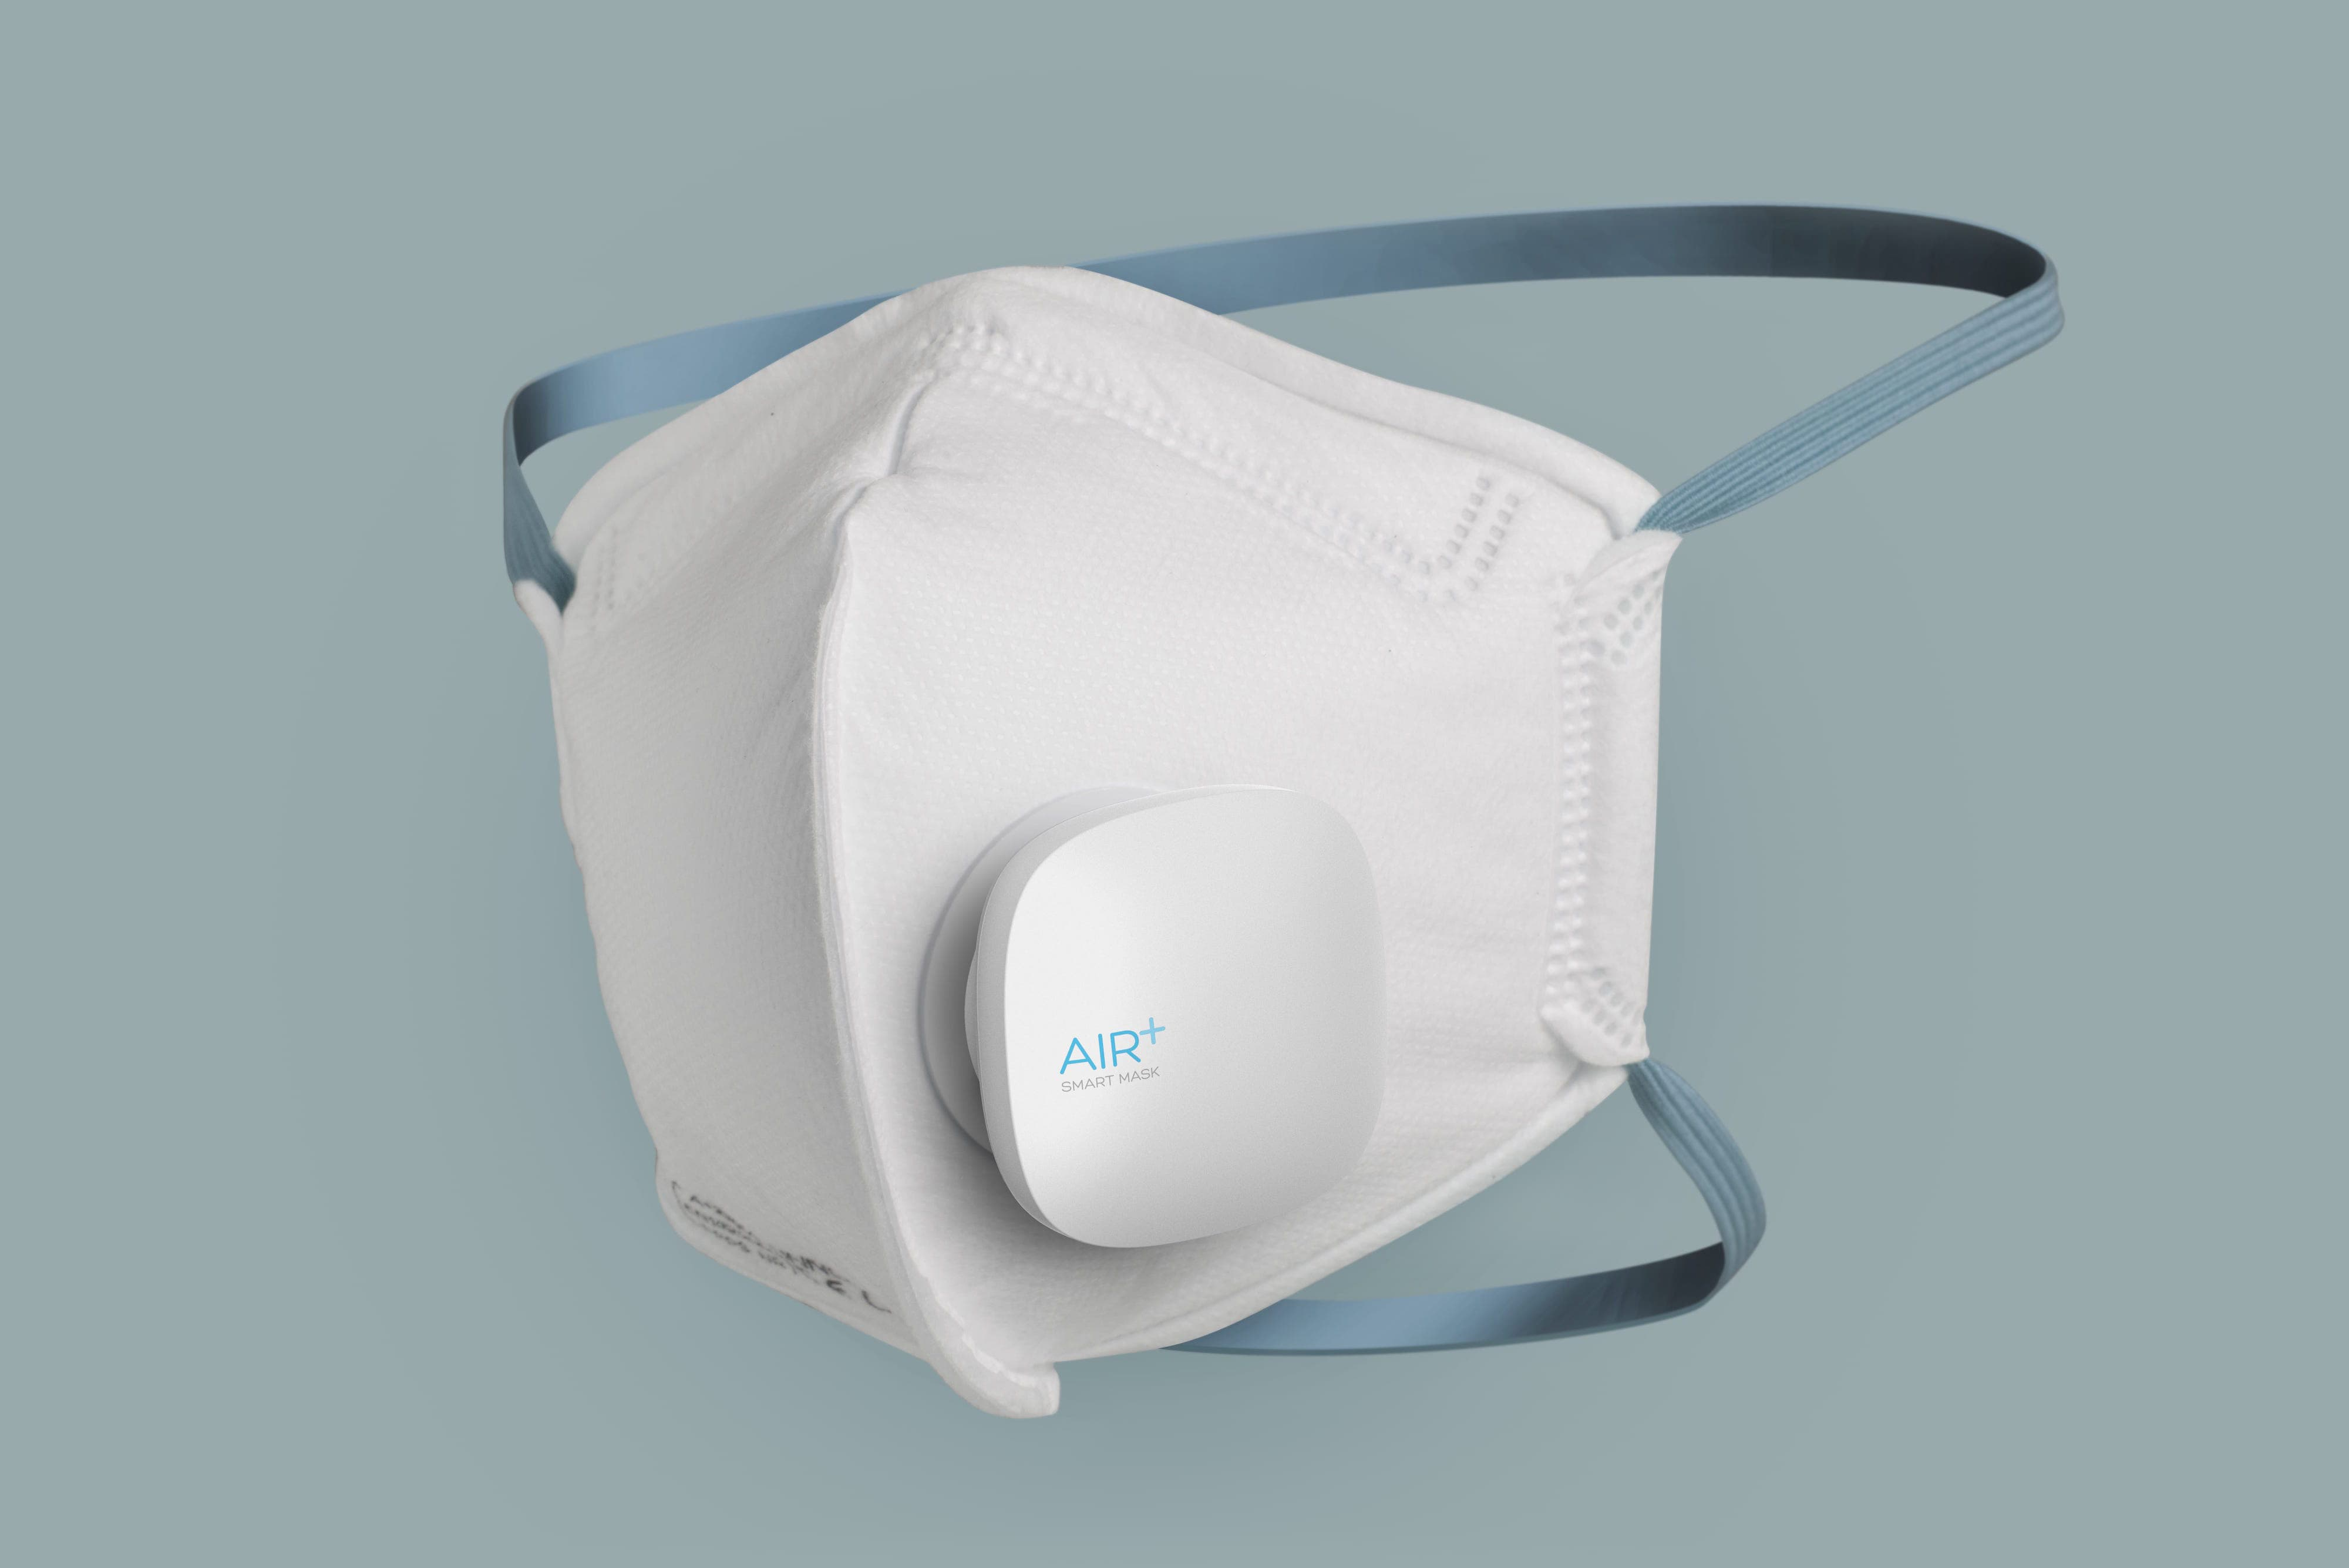 STUCK-Design-Healthcare-Air_Smart_Mask_Respirator_Ventilator_ProductShot_Teal_Tilt_Dithered 2